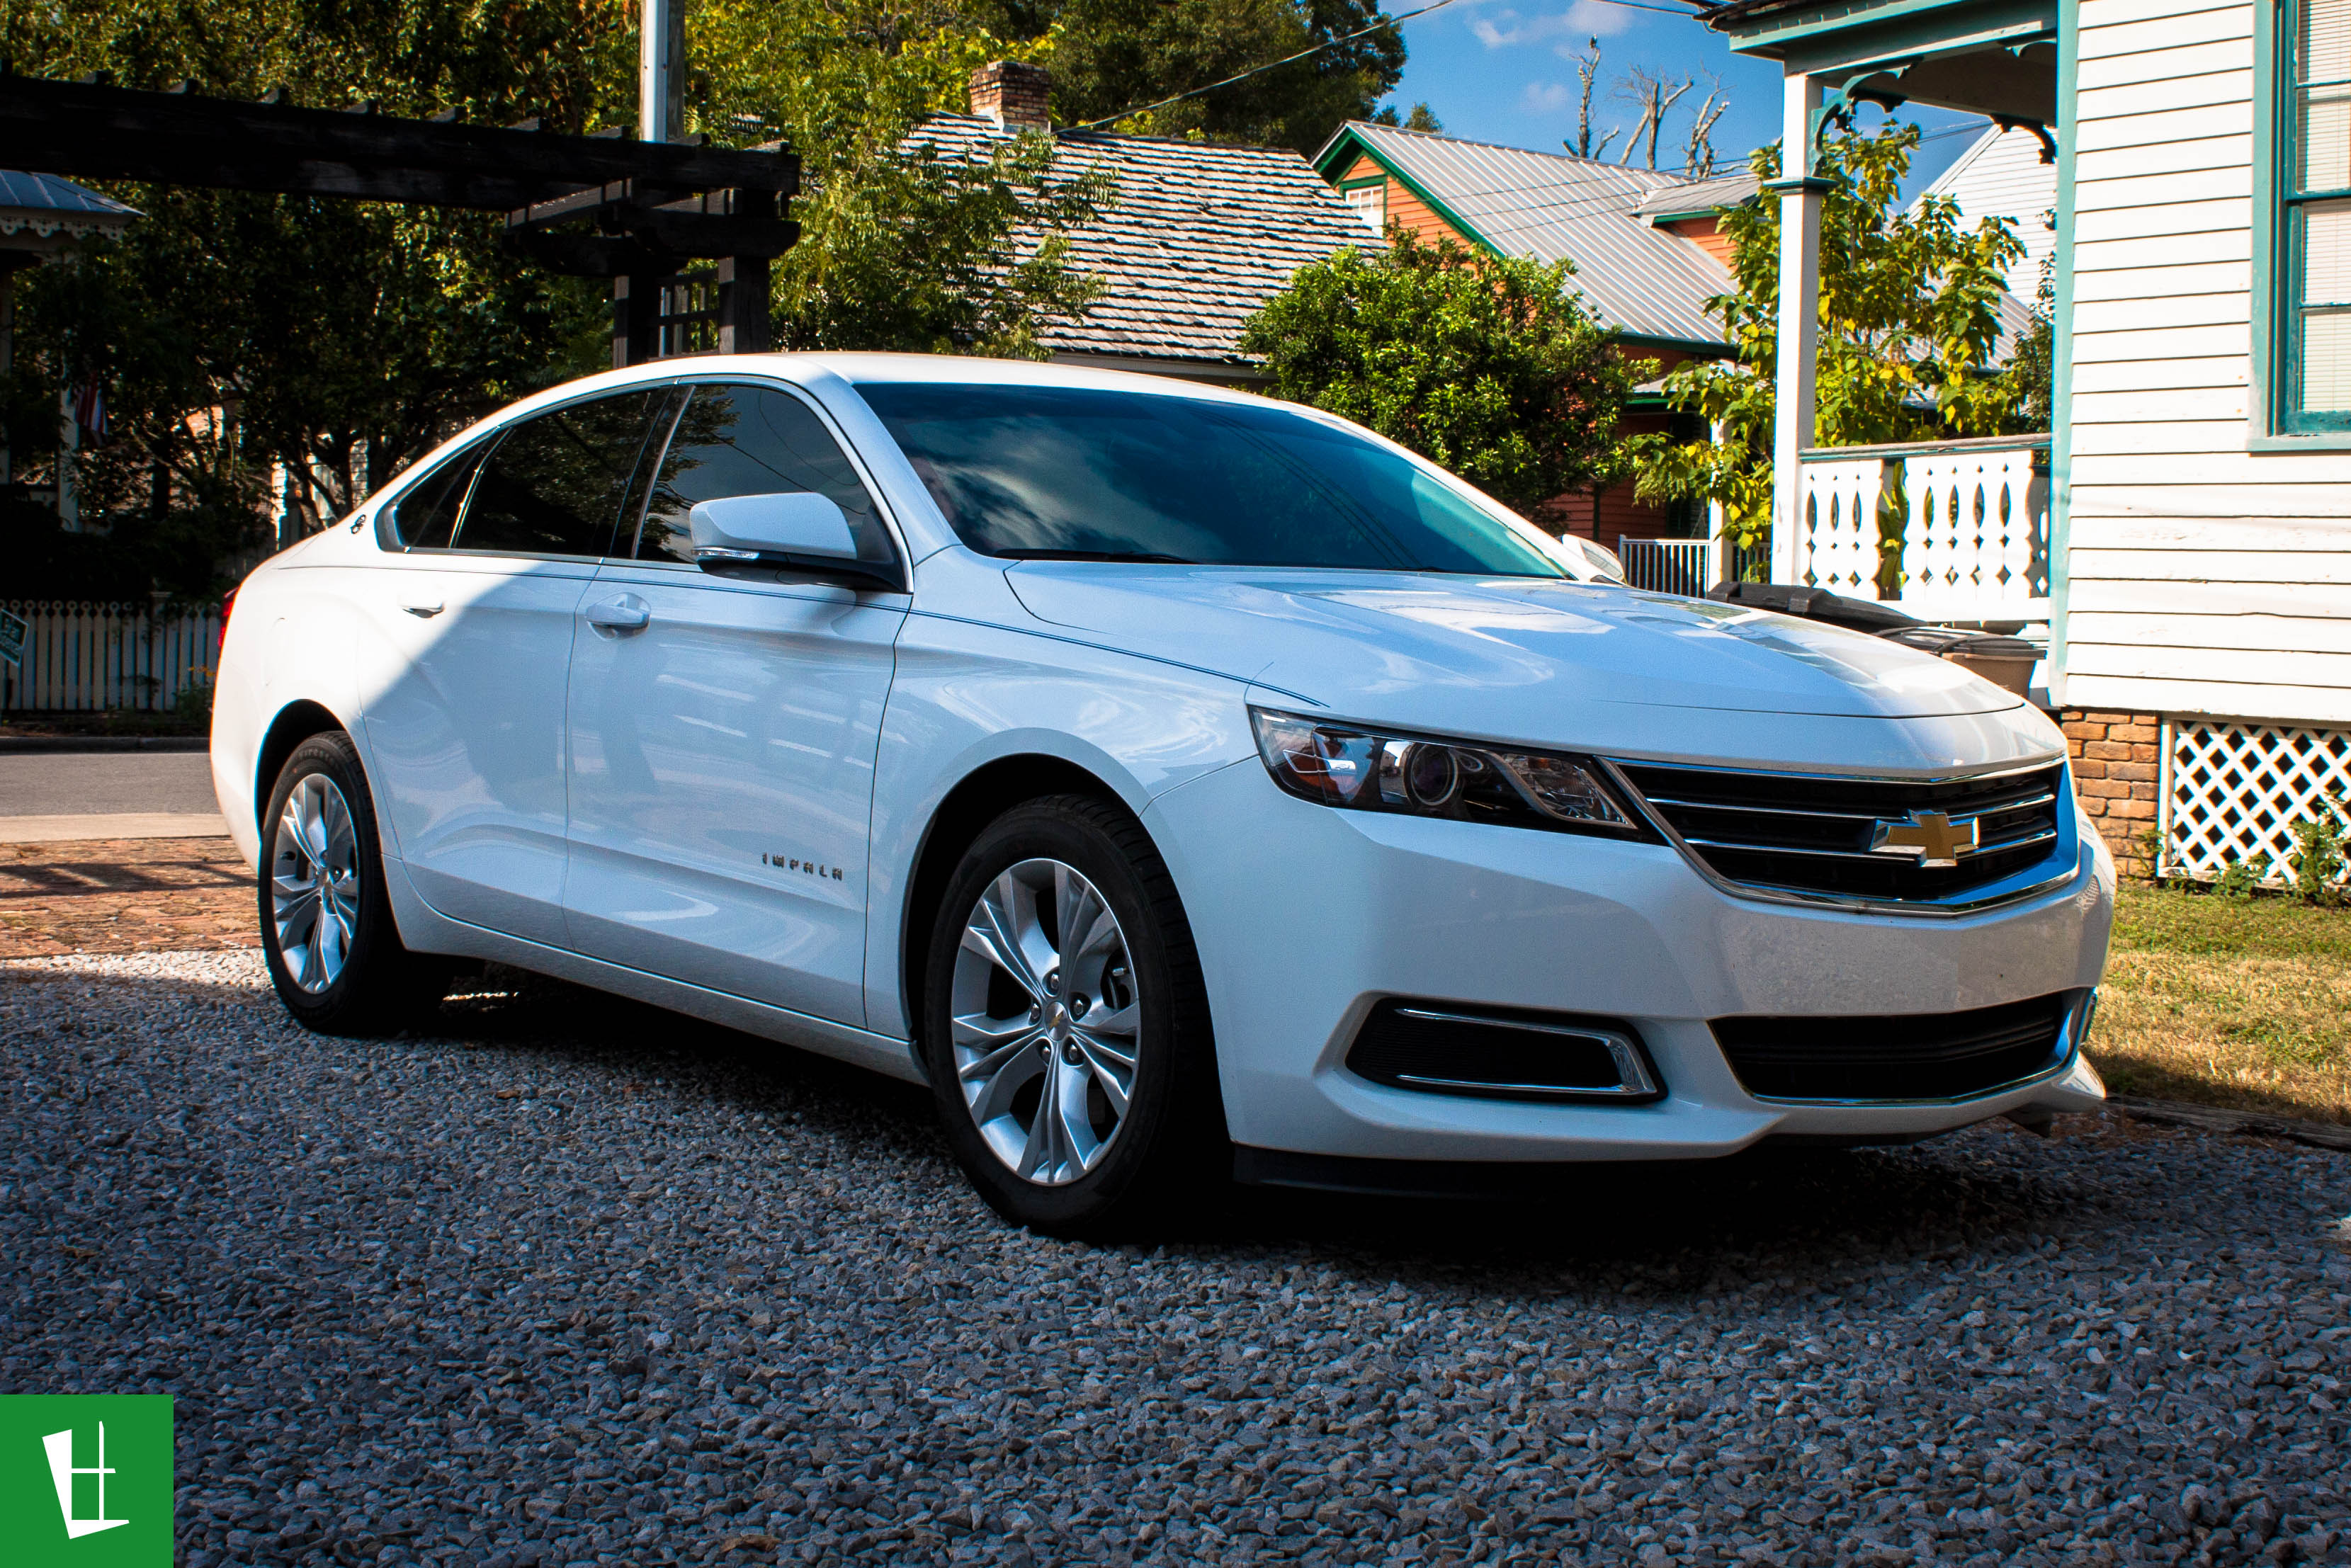 2014 chevrolet impala window tinting. Black Bedroom Furniture Sets. Home Design Ideas